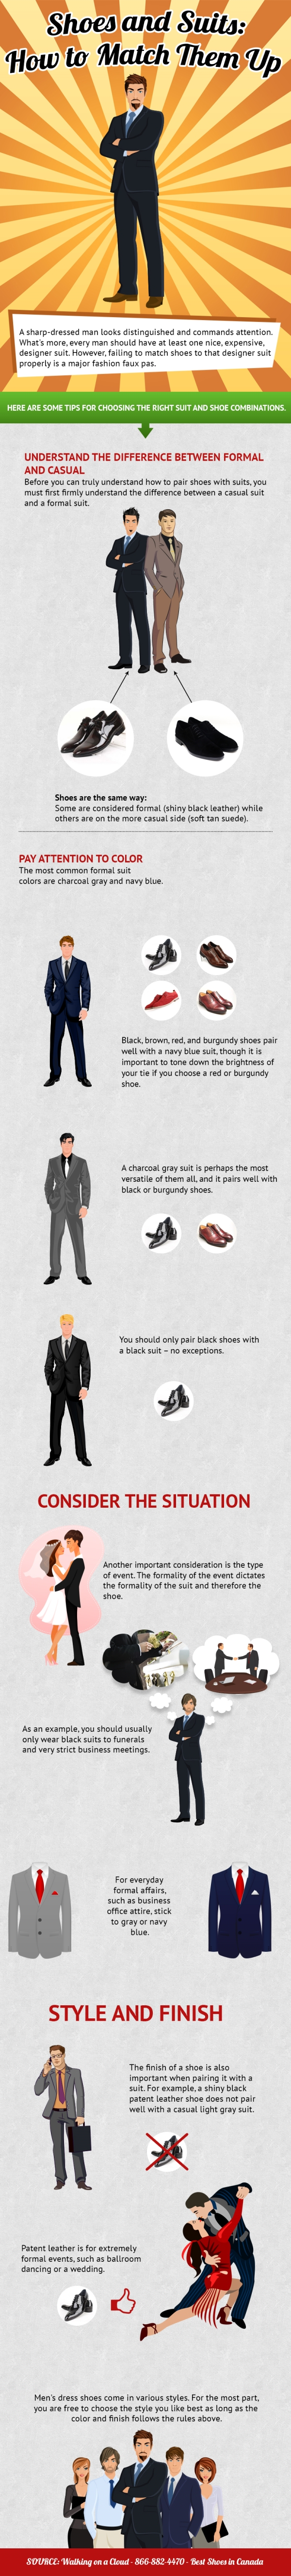 Shoes-and-Suits-How-to-Match-Them-Up-jpg